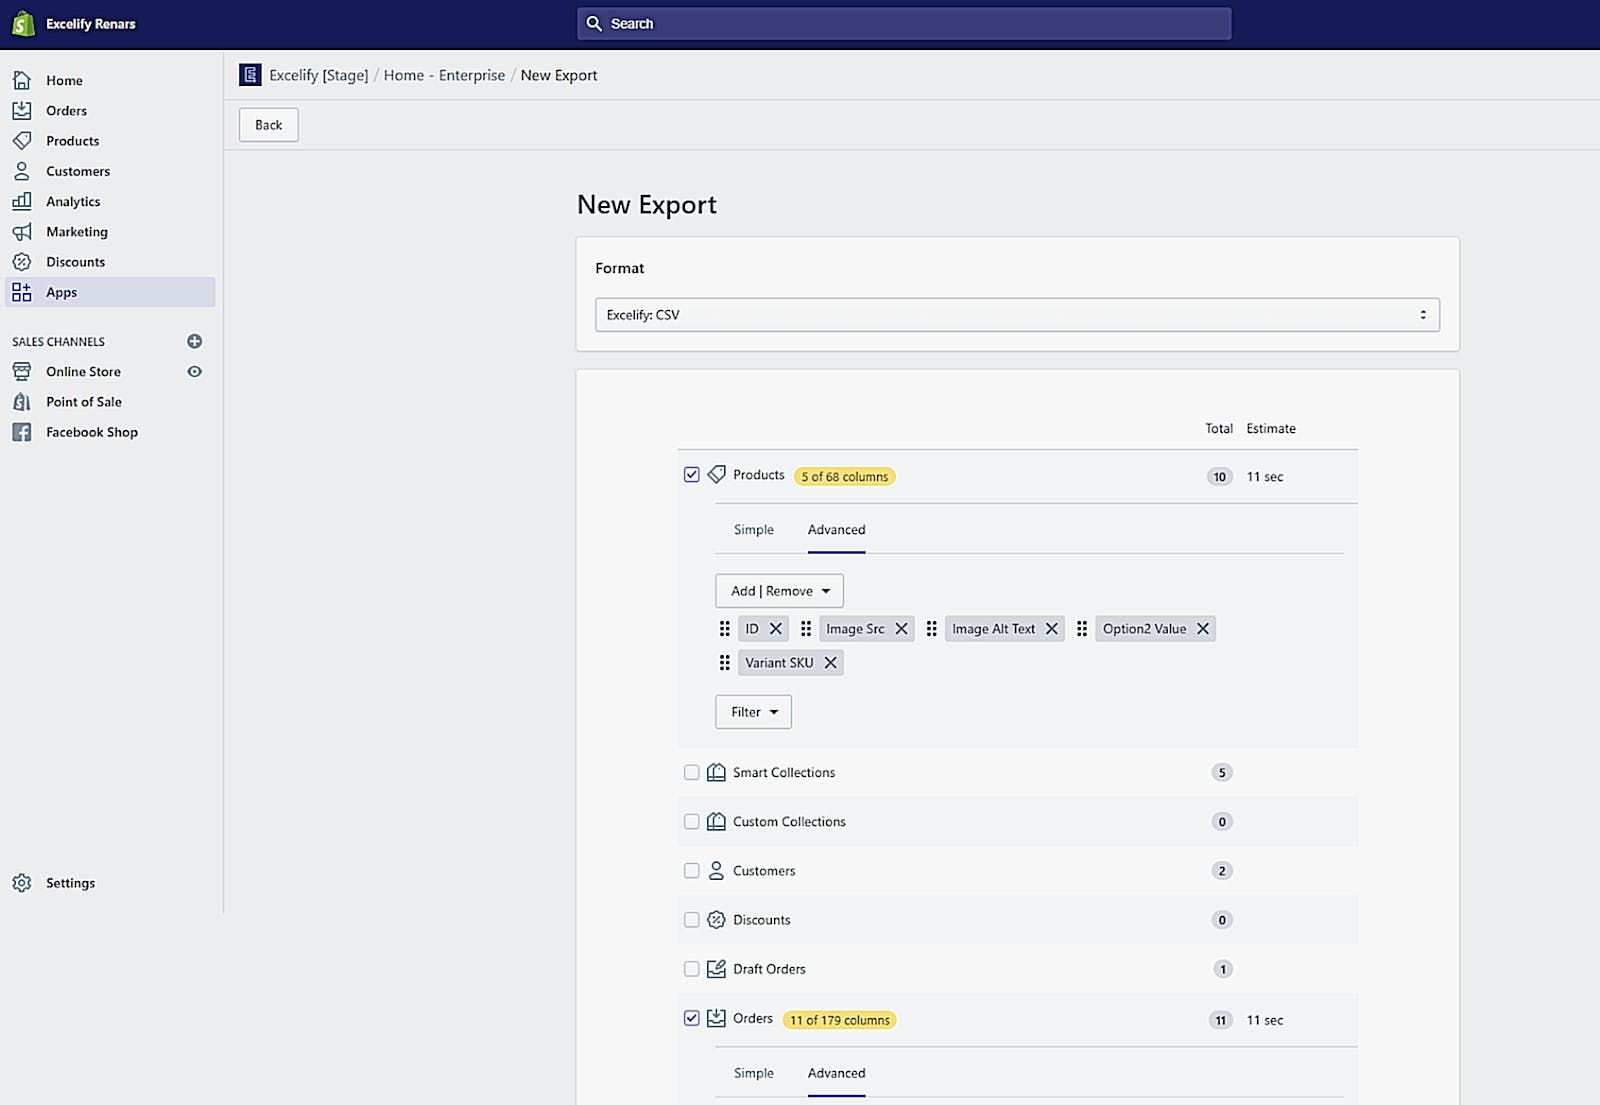 Excelify New Export panel.